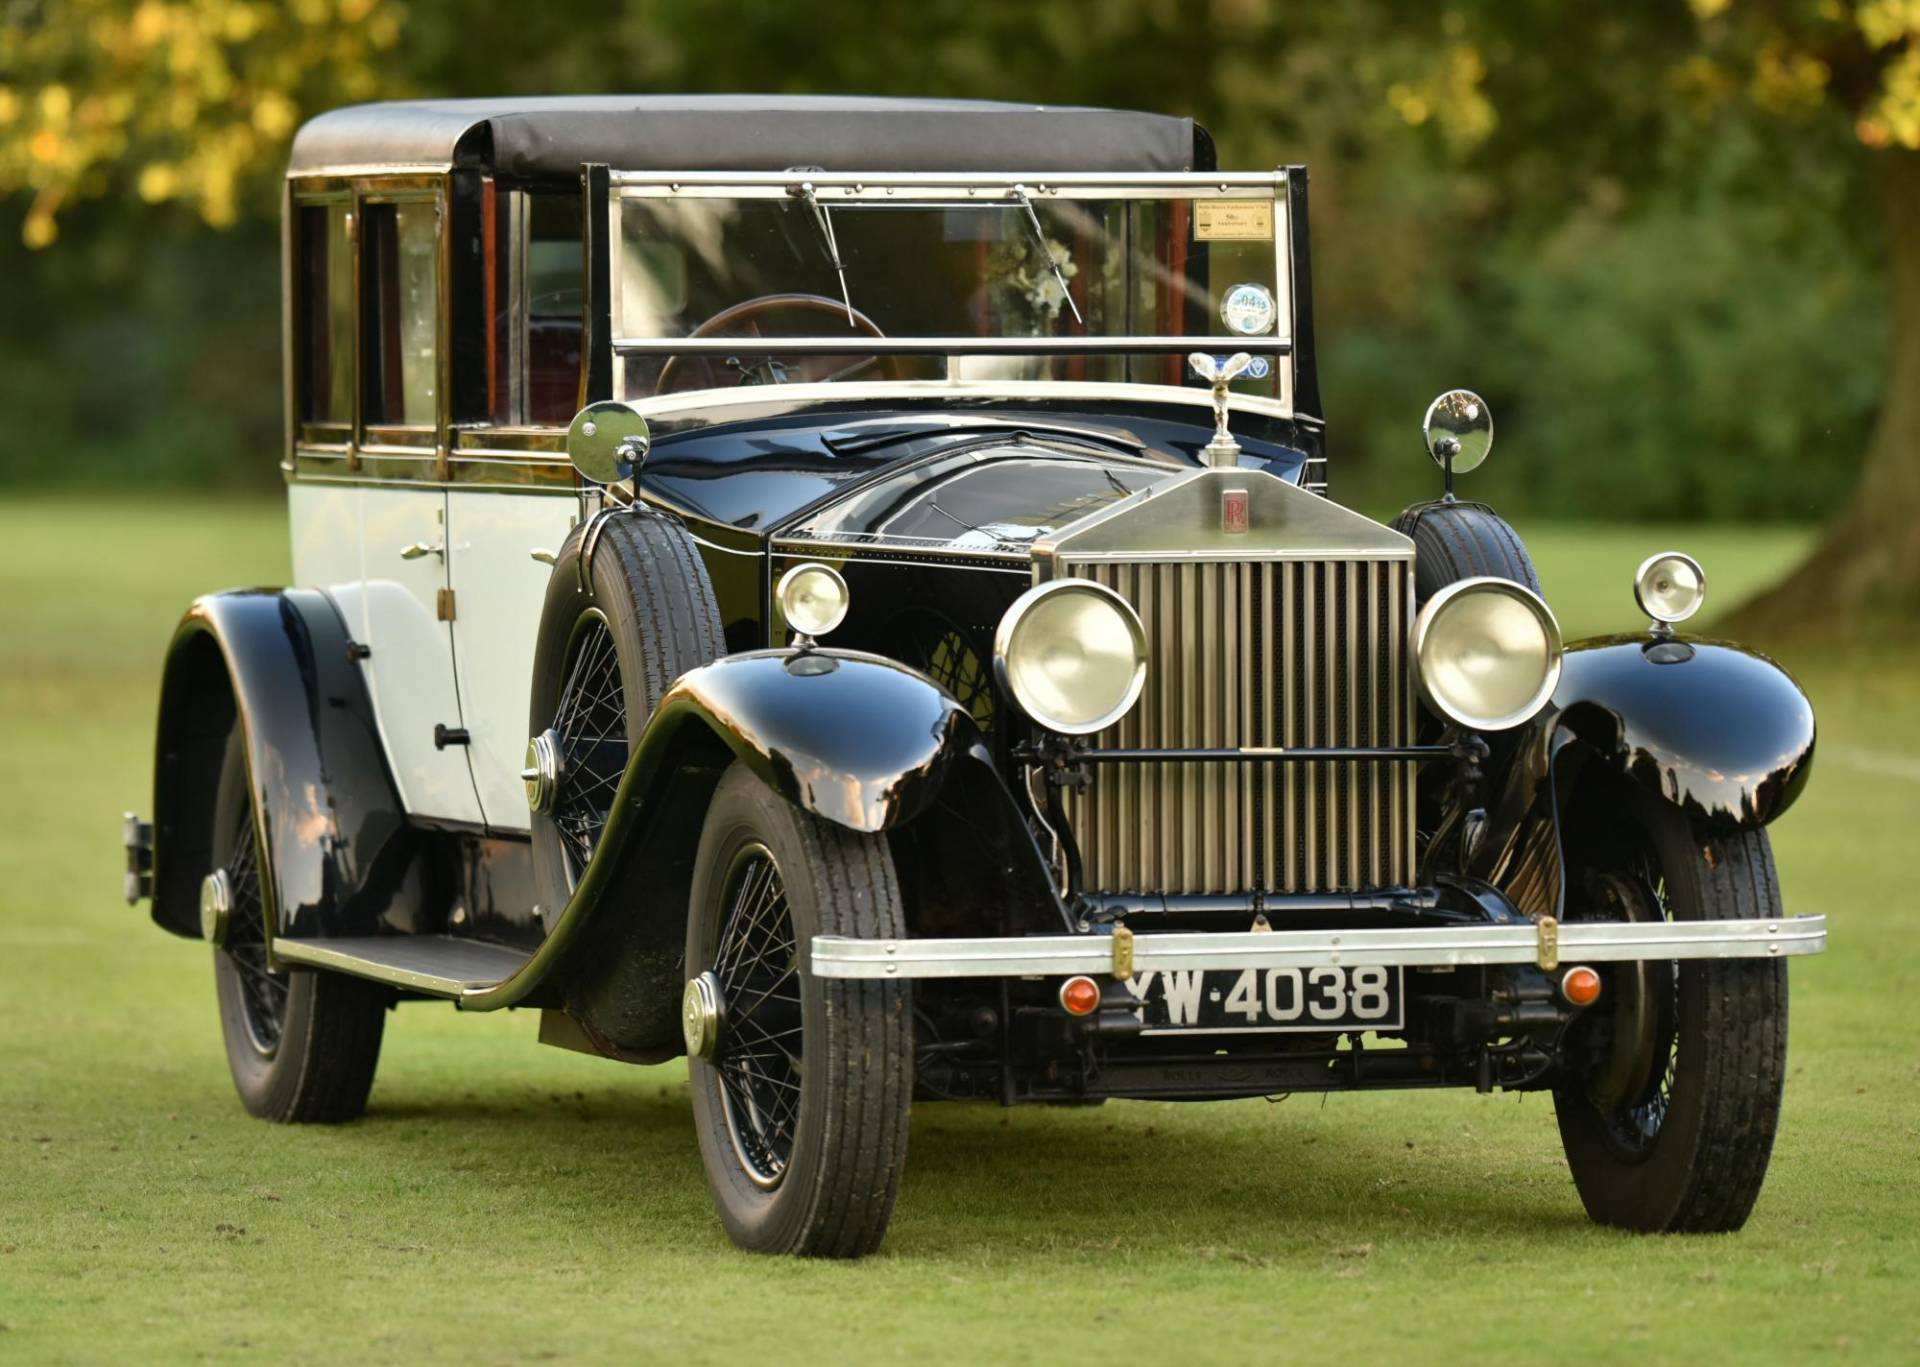 For Sale: Rolls-Royce Phantom I (1928) offered for GBP 115,000